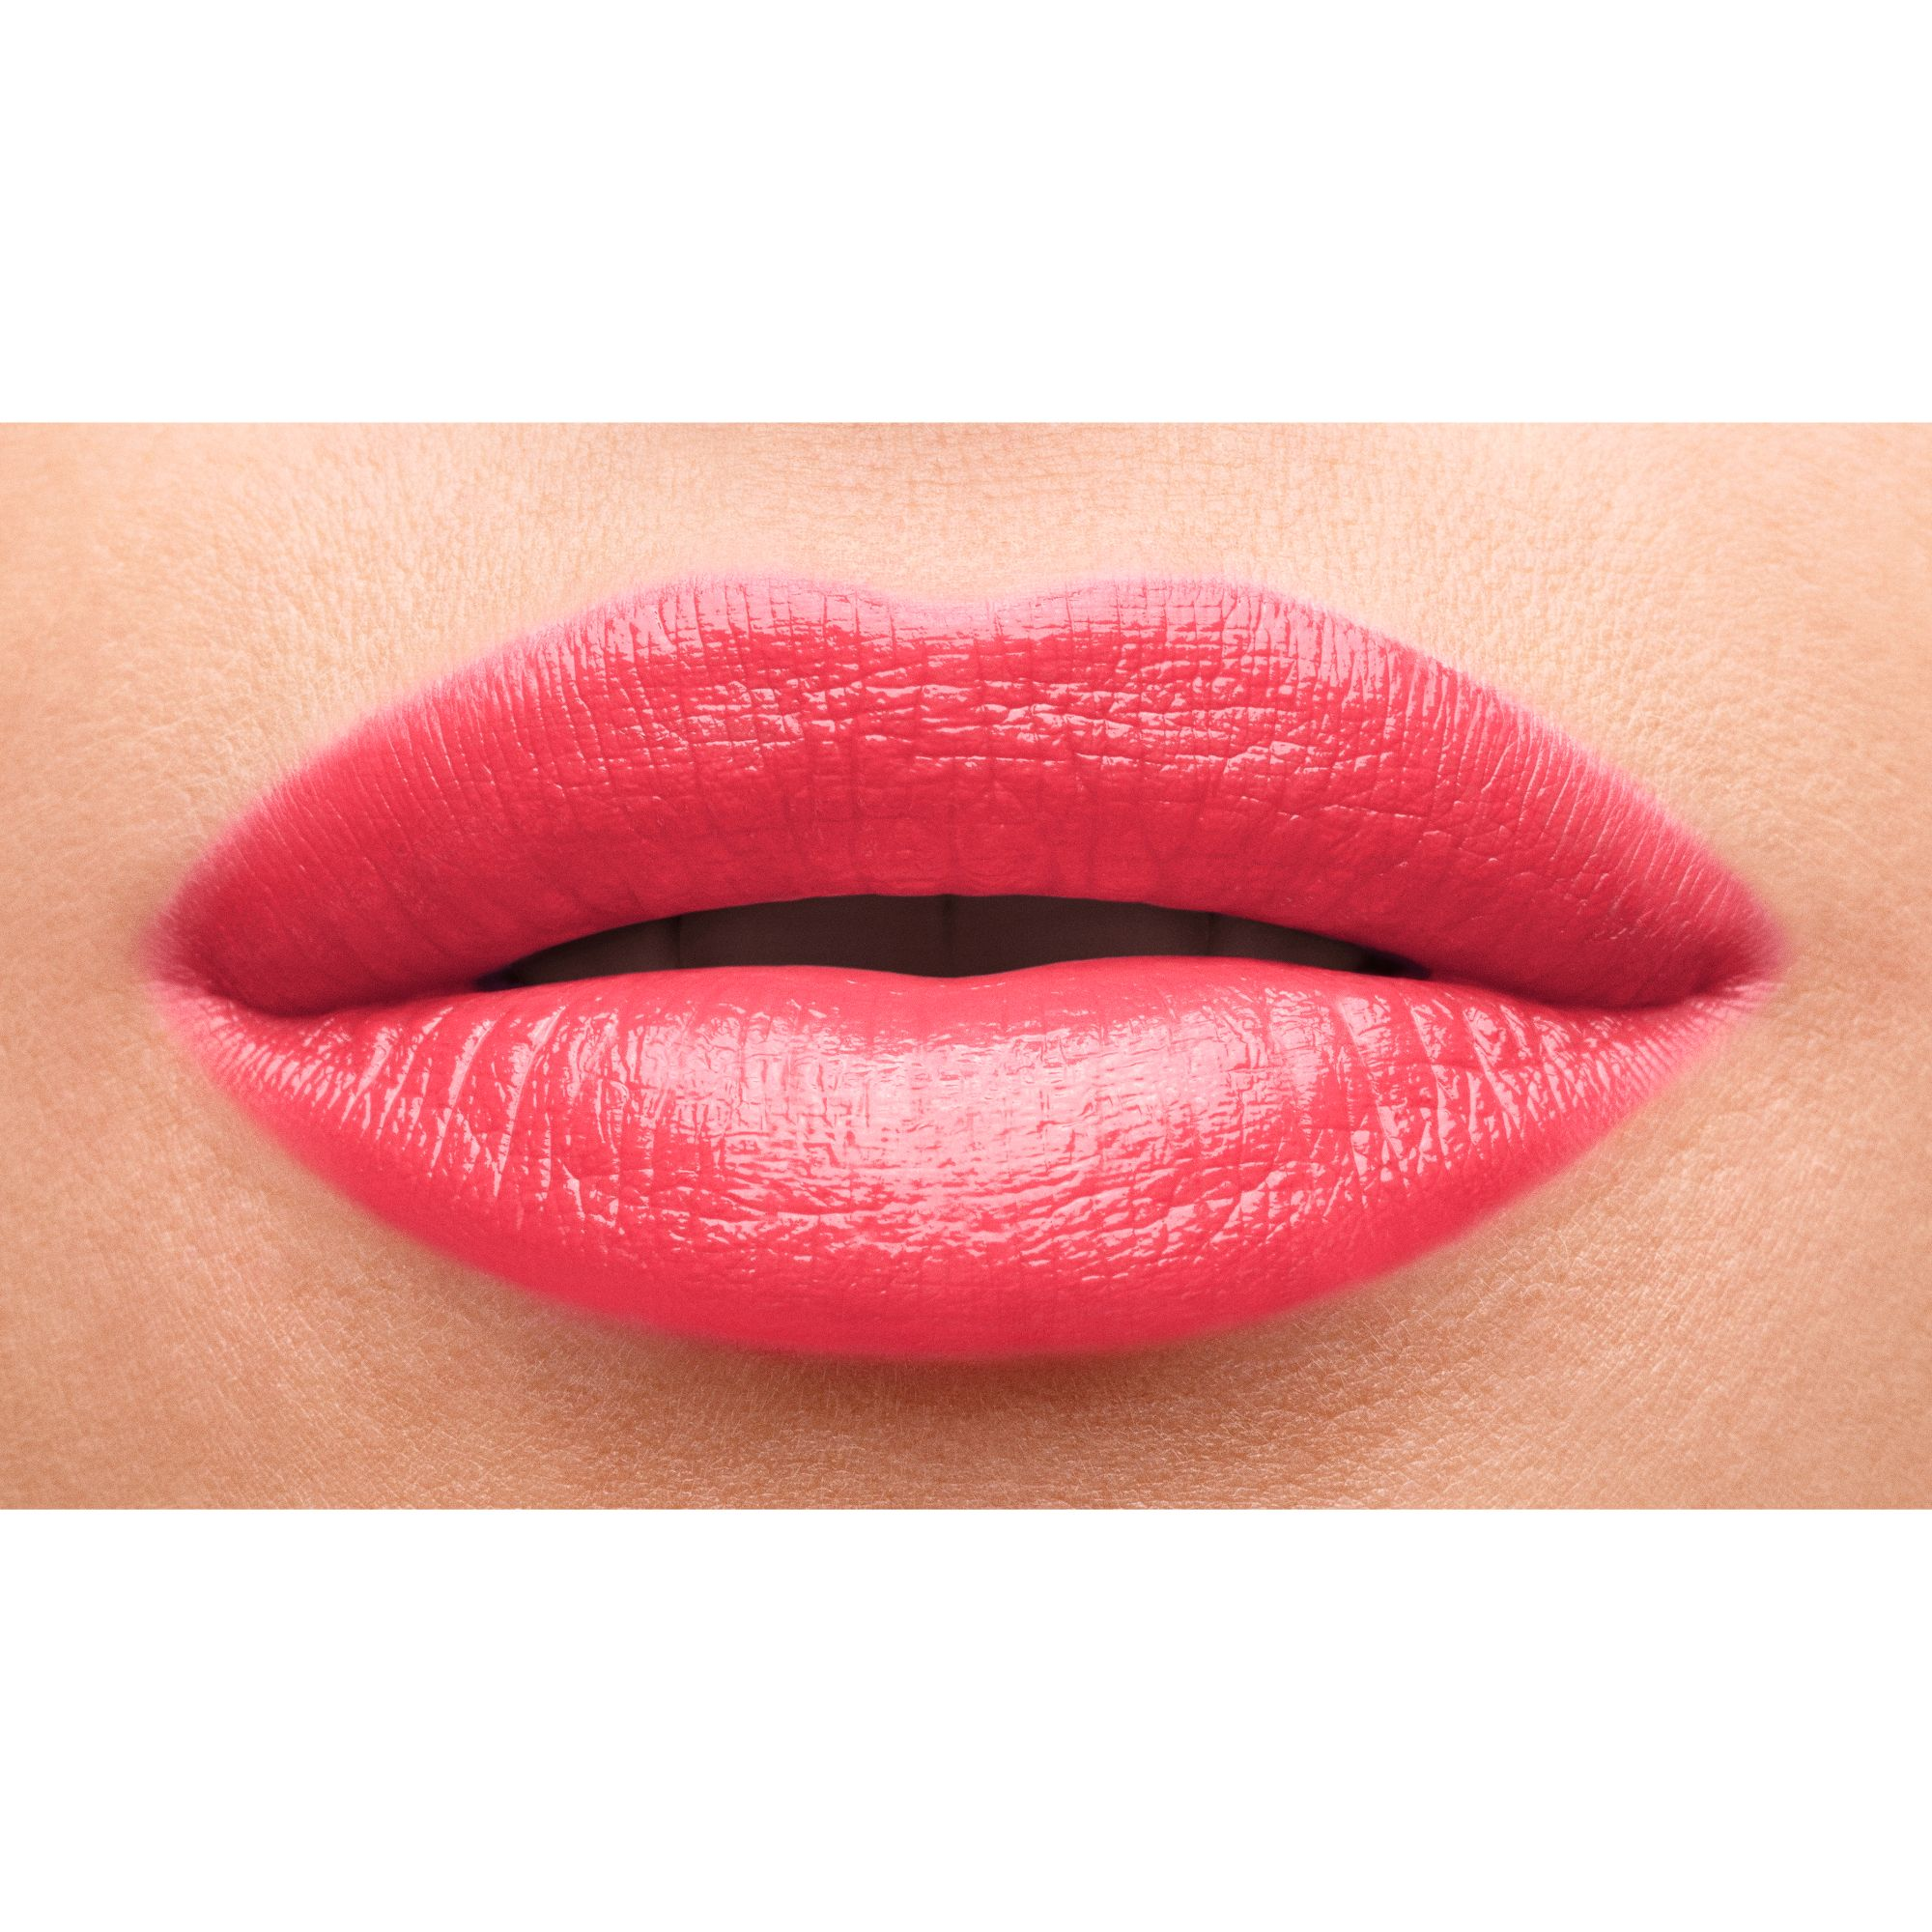 Yves Saint Laurent Rouge Pur Couture Lipstick, 52 rouge wood